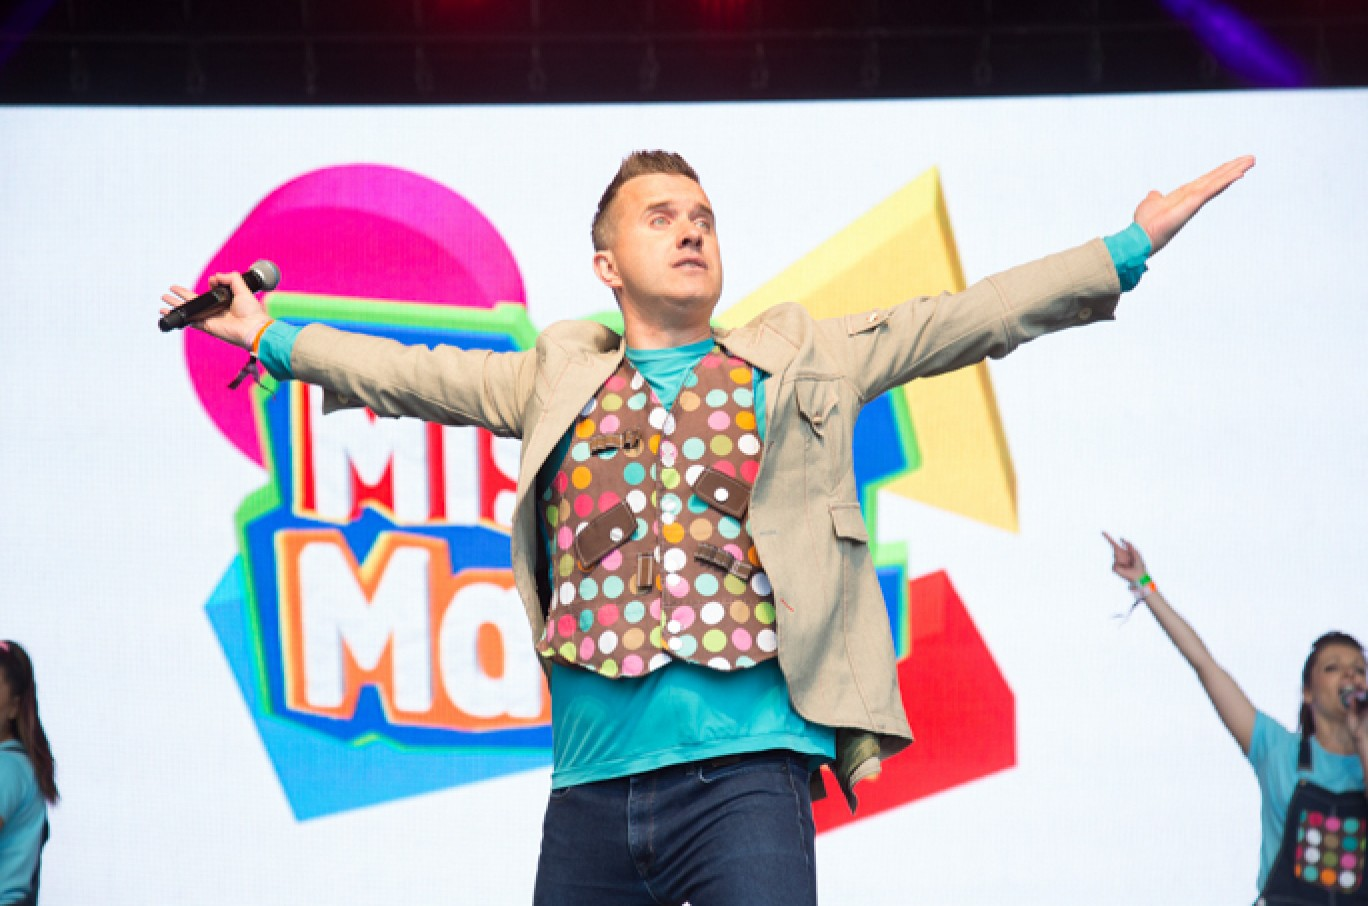 6_114-camp-bestival-2017-mister-maker-on-castle-stage-rb-f61a05101501585087